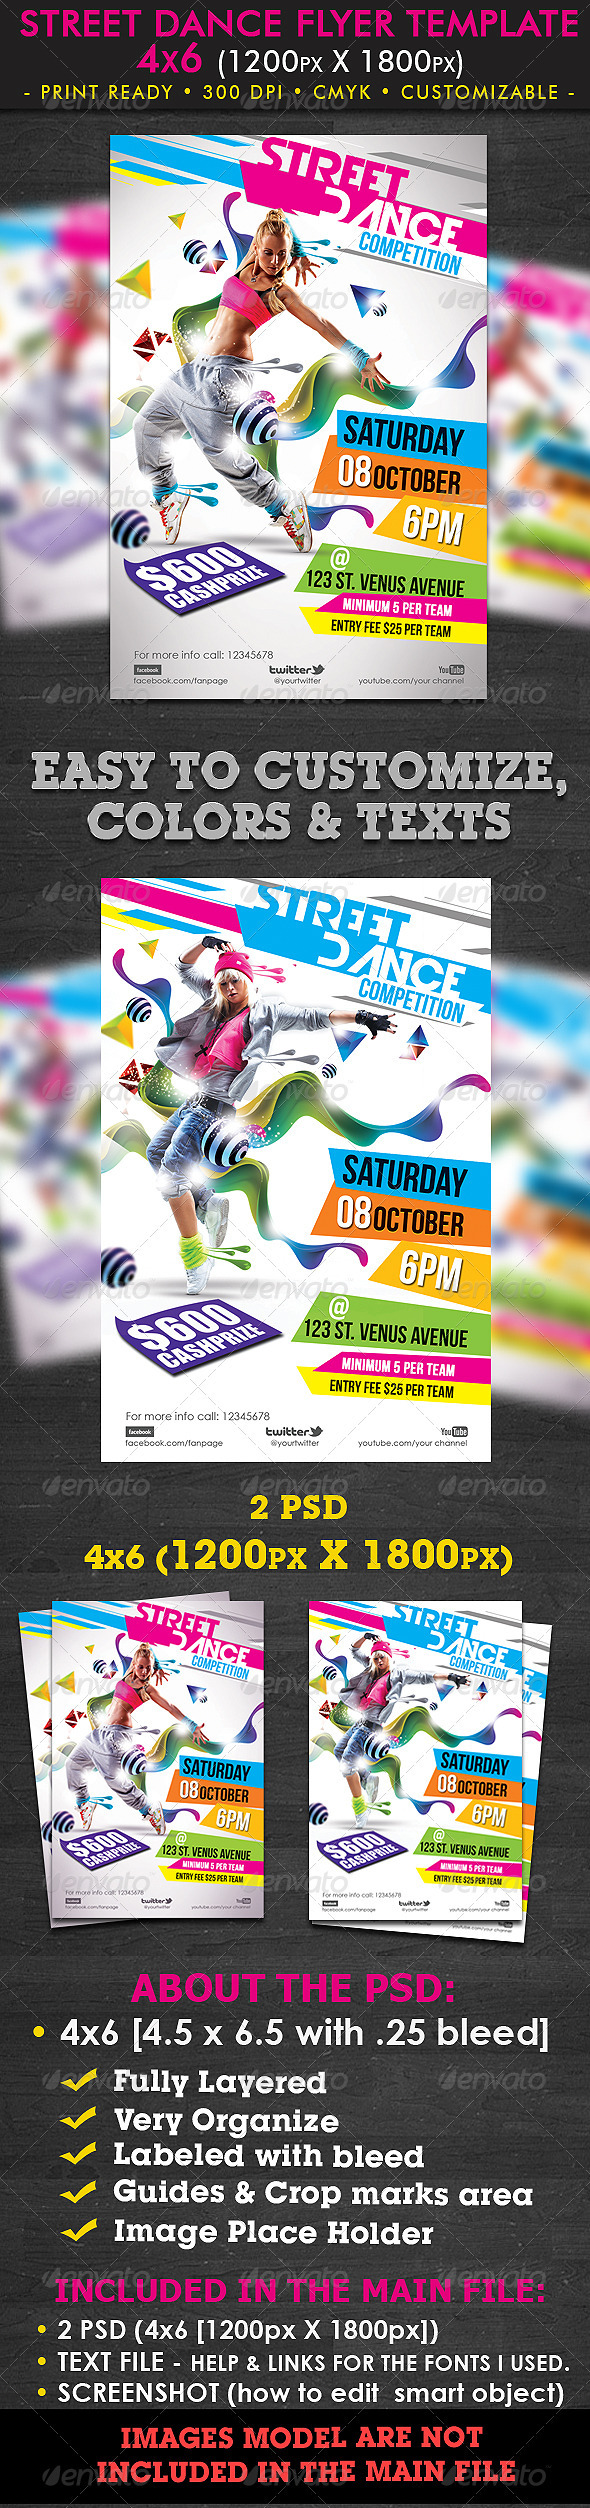 Street Dance Flyer Template - Clubs & Parties Events